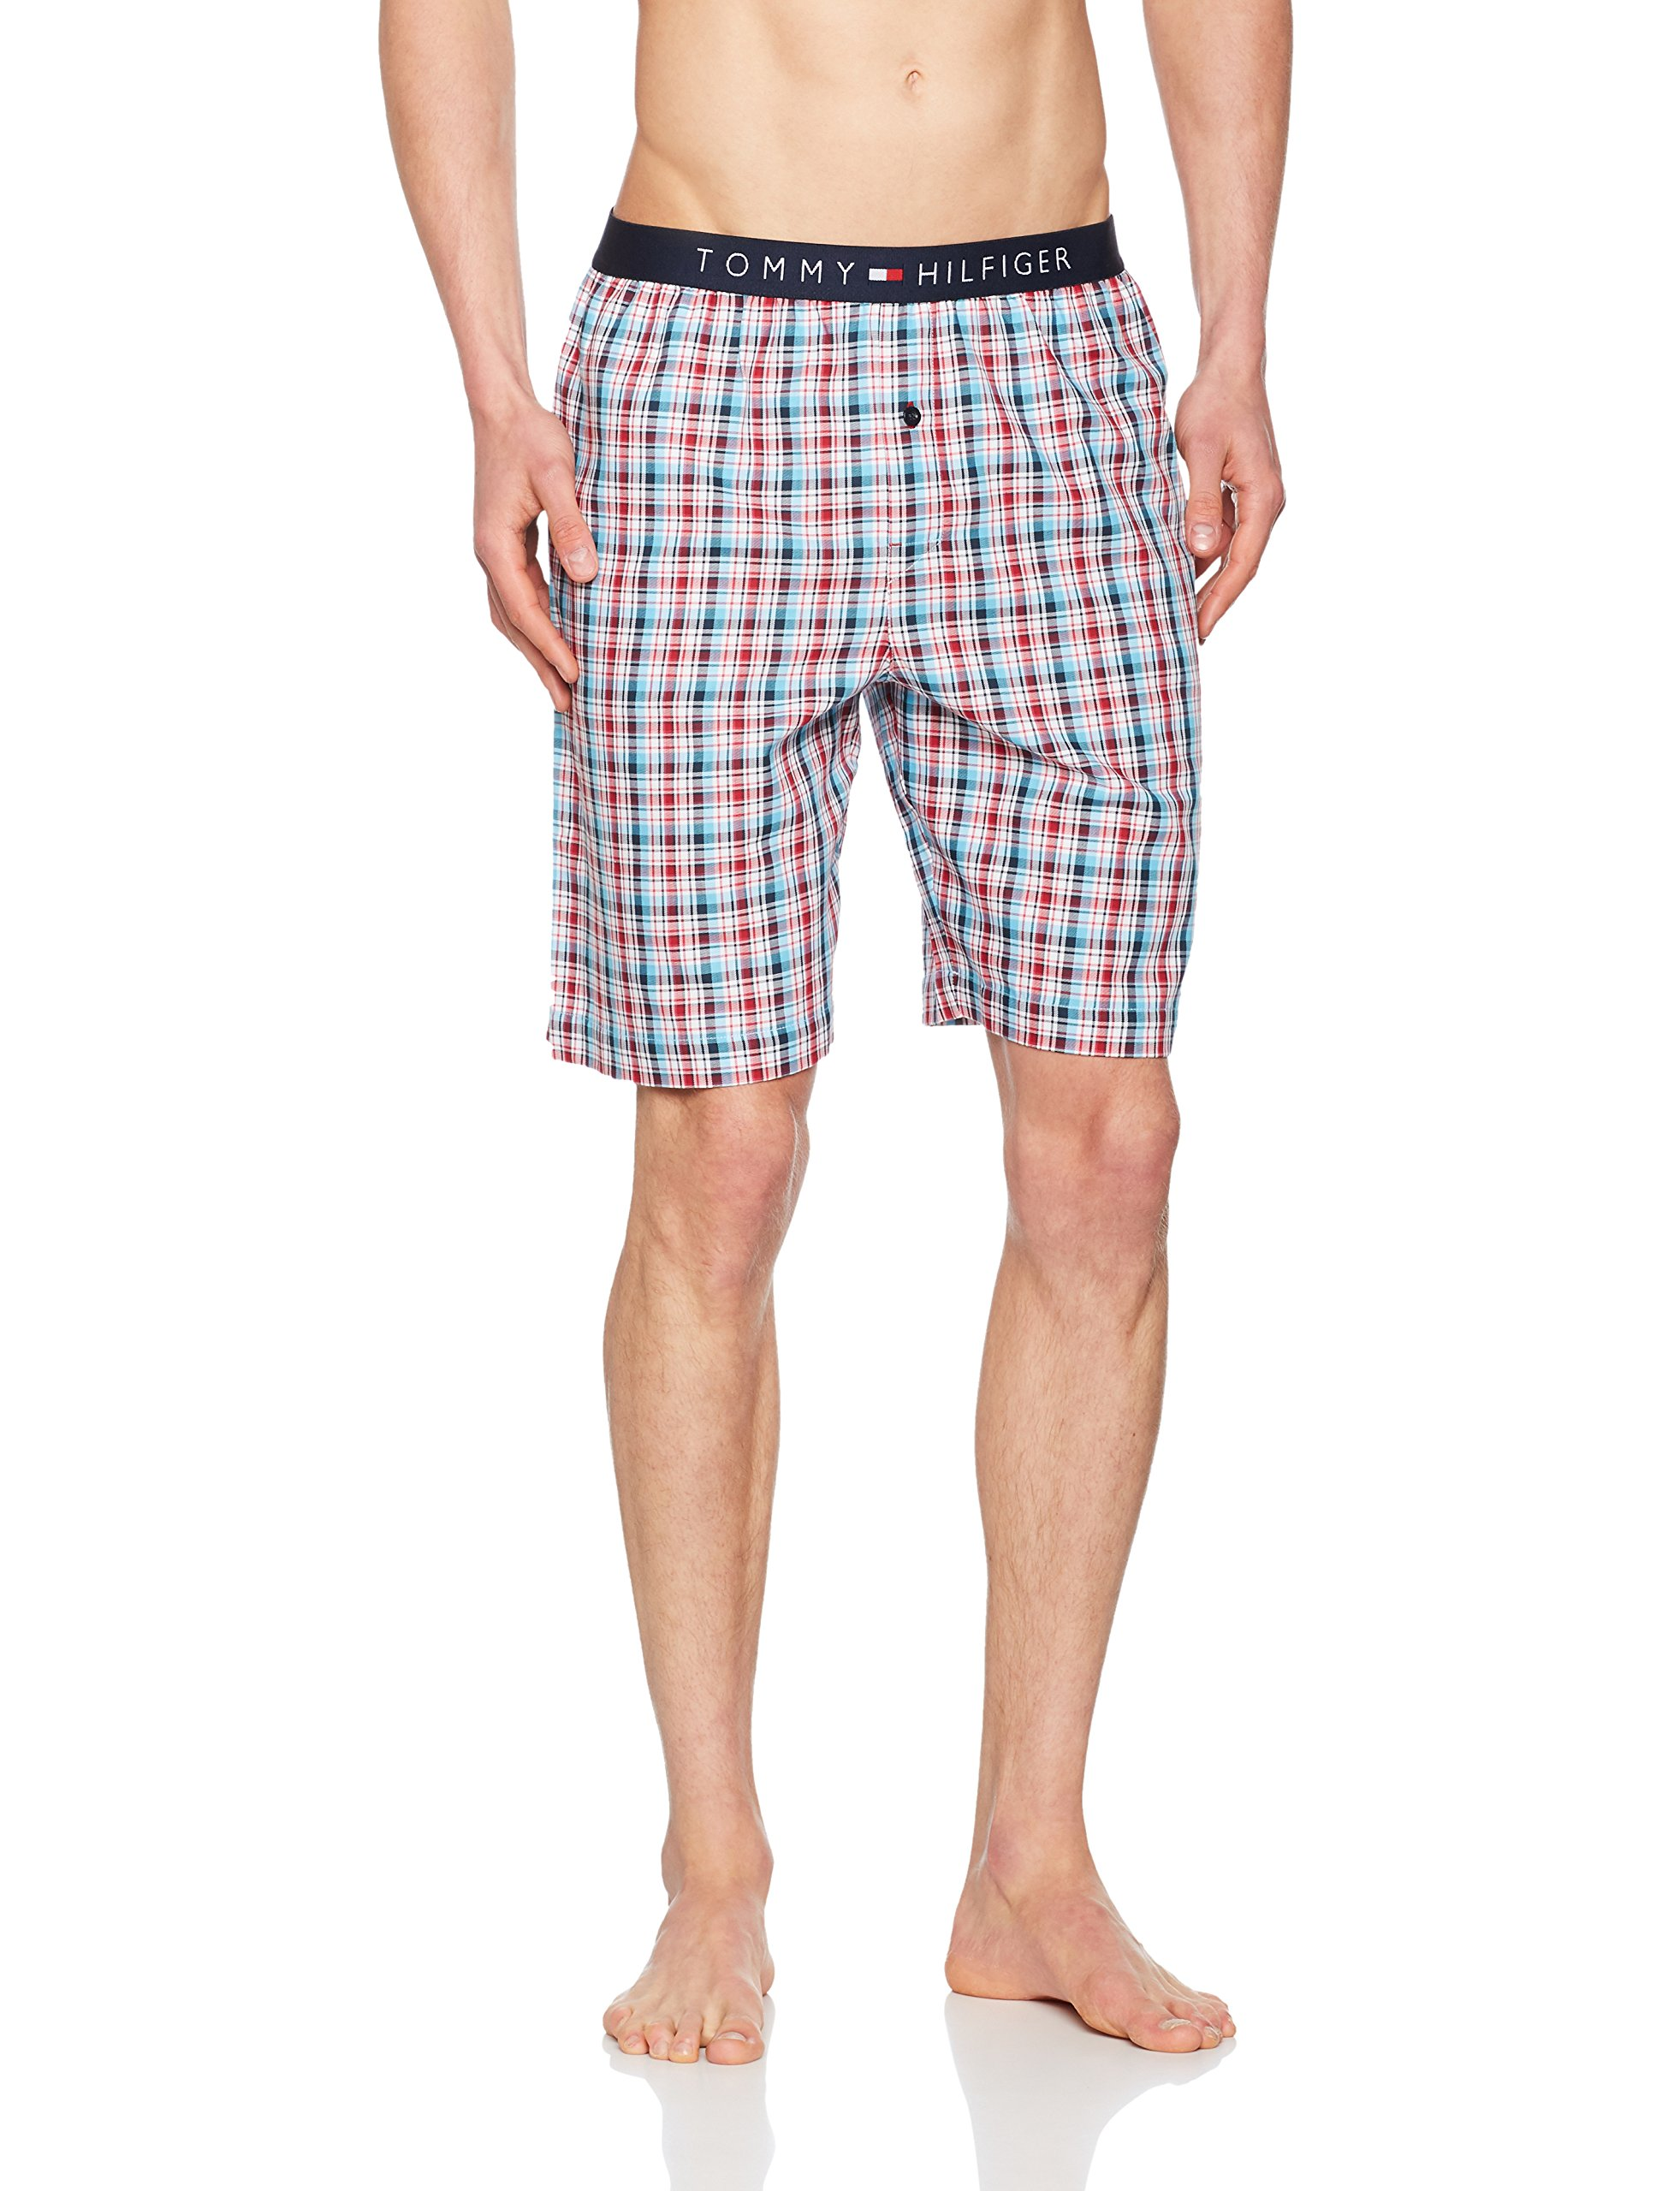 Tommy Hilfiger Men's Summer Check Woven Lounge Shorts, Red/White/Blue Medium Red/white/blue